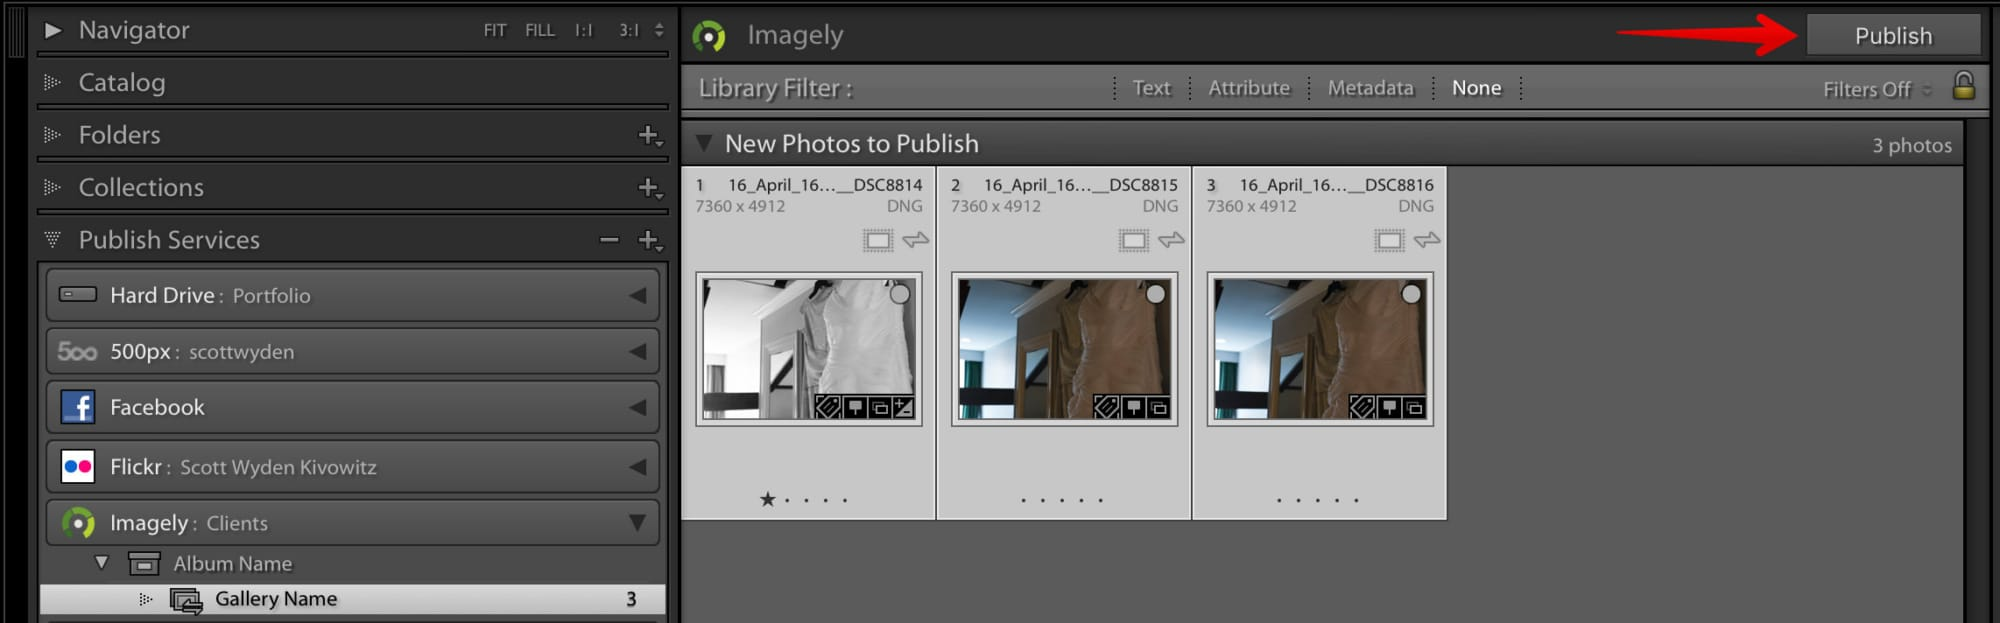 Step 3. Once you drop images inside of your new galleries, click on the Publish button at the top right of the Collection.